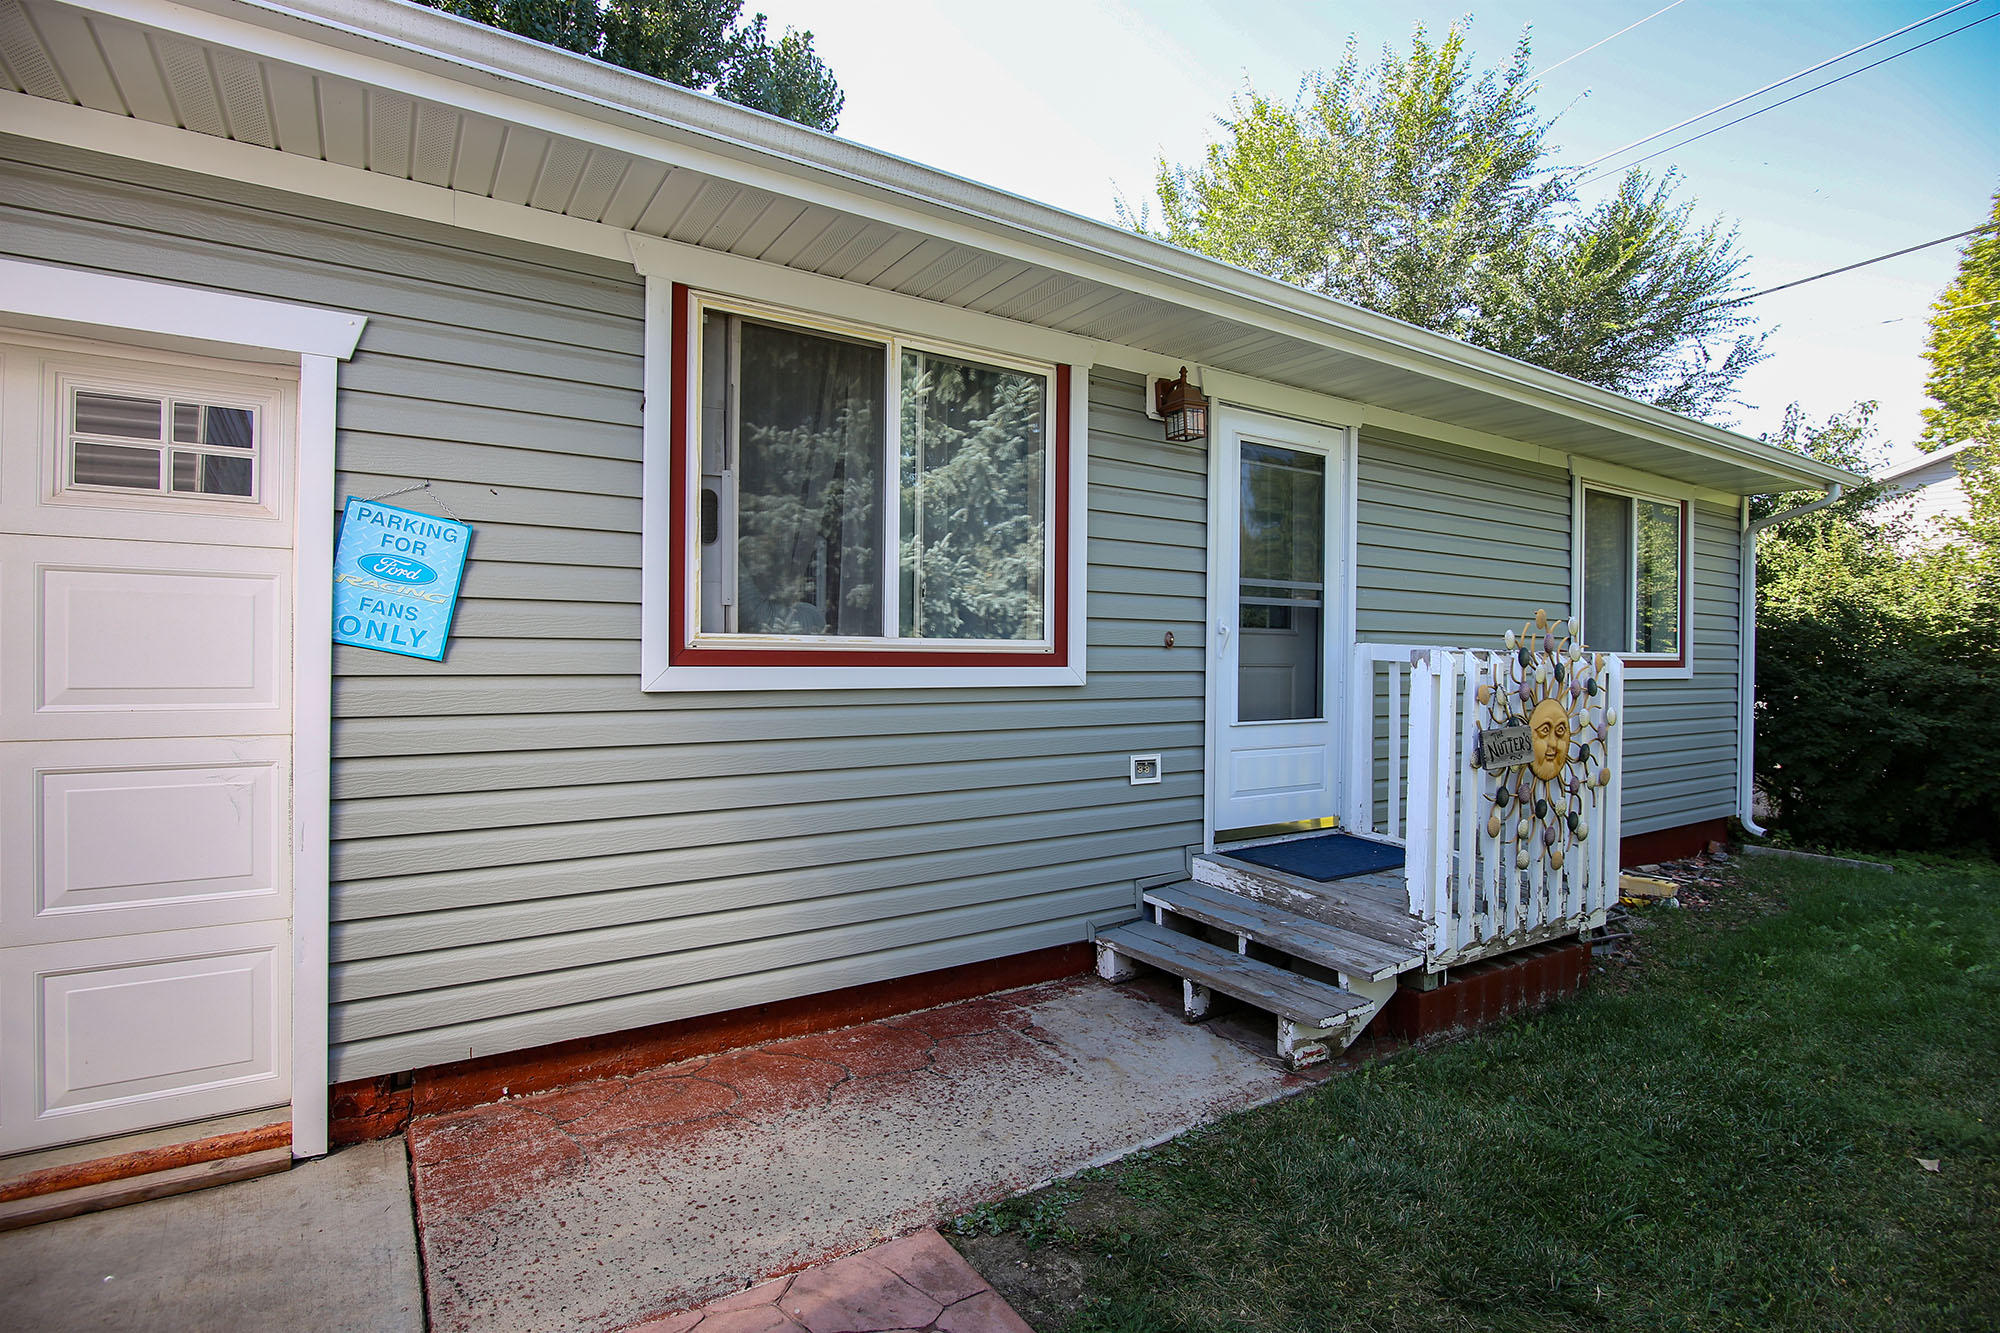 236 9th Street, Sheridan, Wyoming 82801, 2 Bedrooms Bedrooms, ,1 BathroomBathrooms,Residential,For Sale,9th,18-986